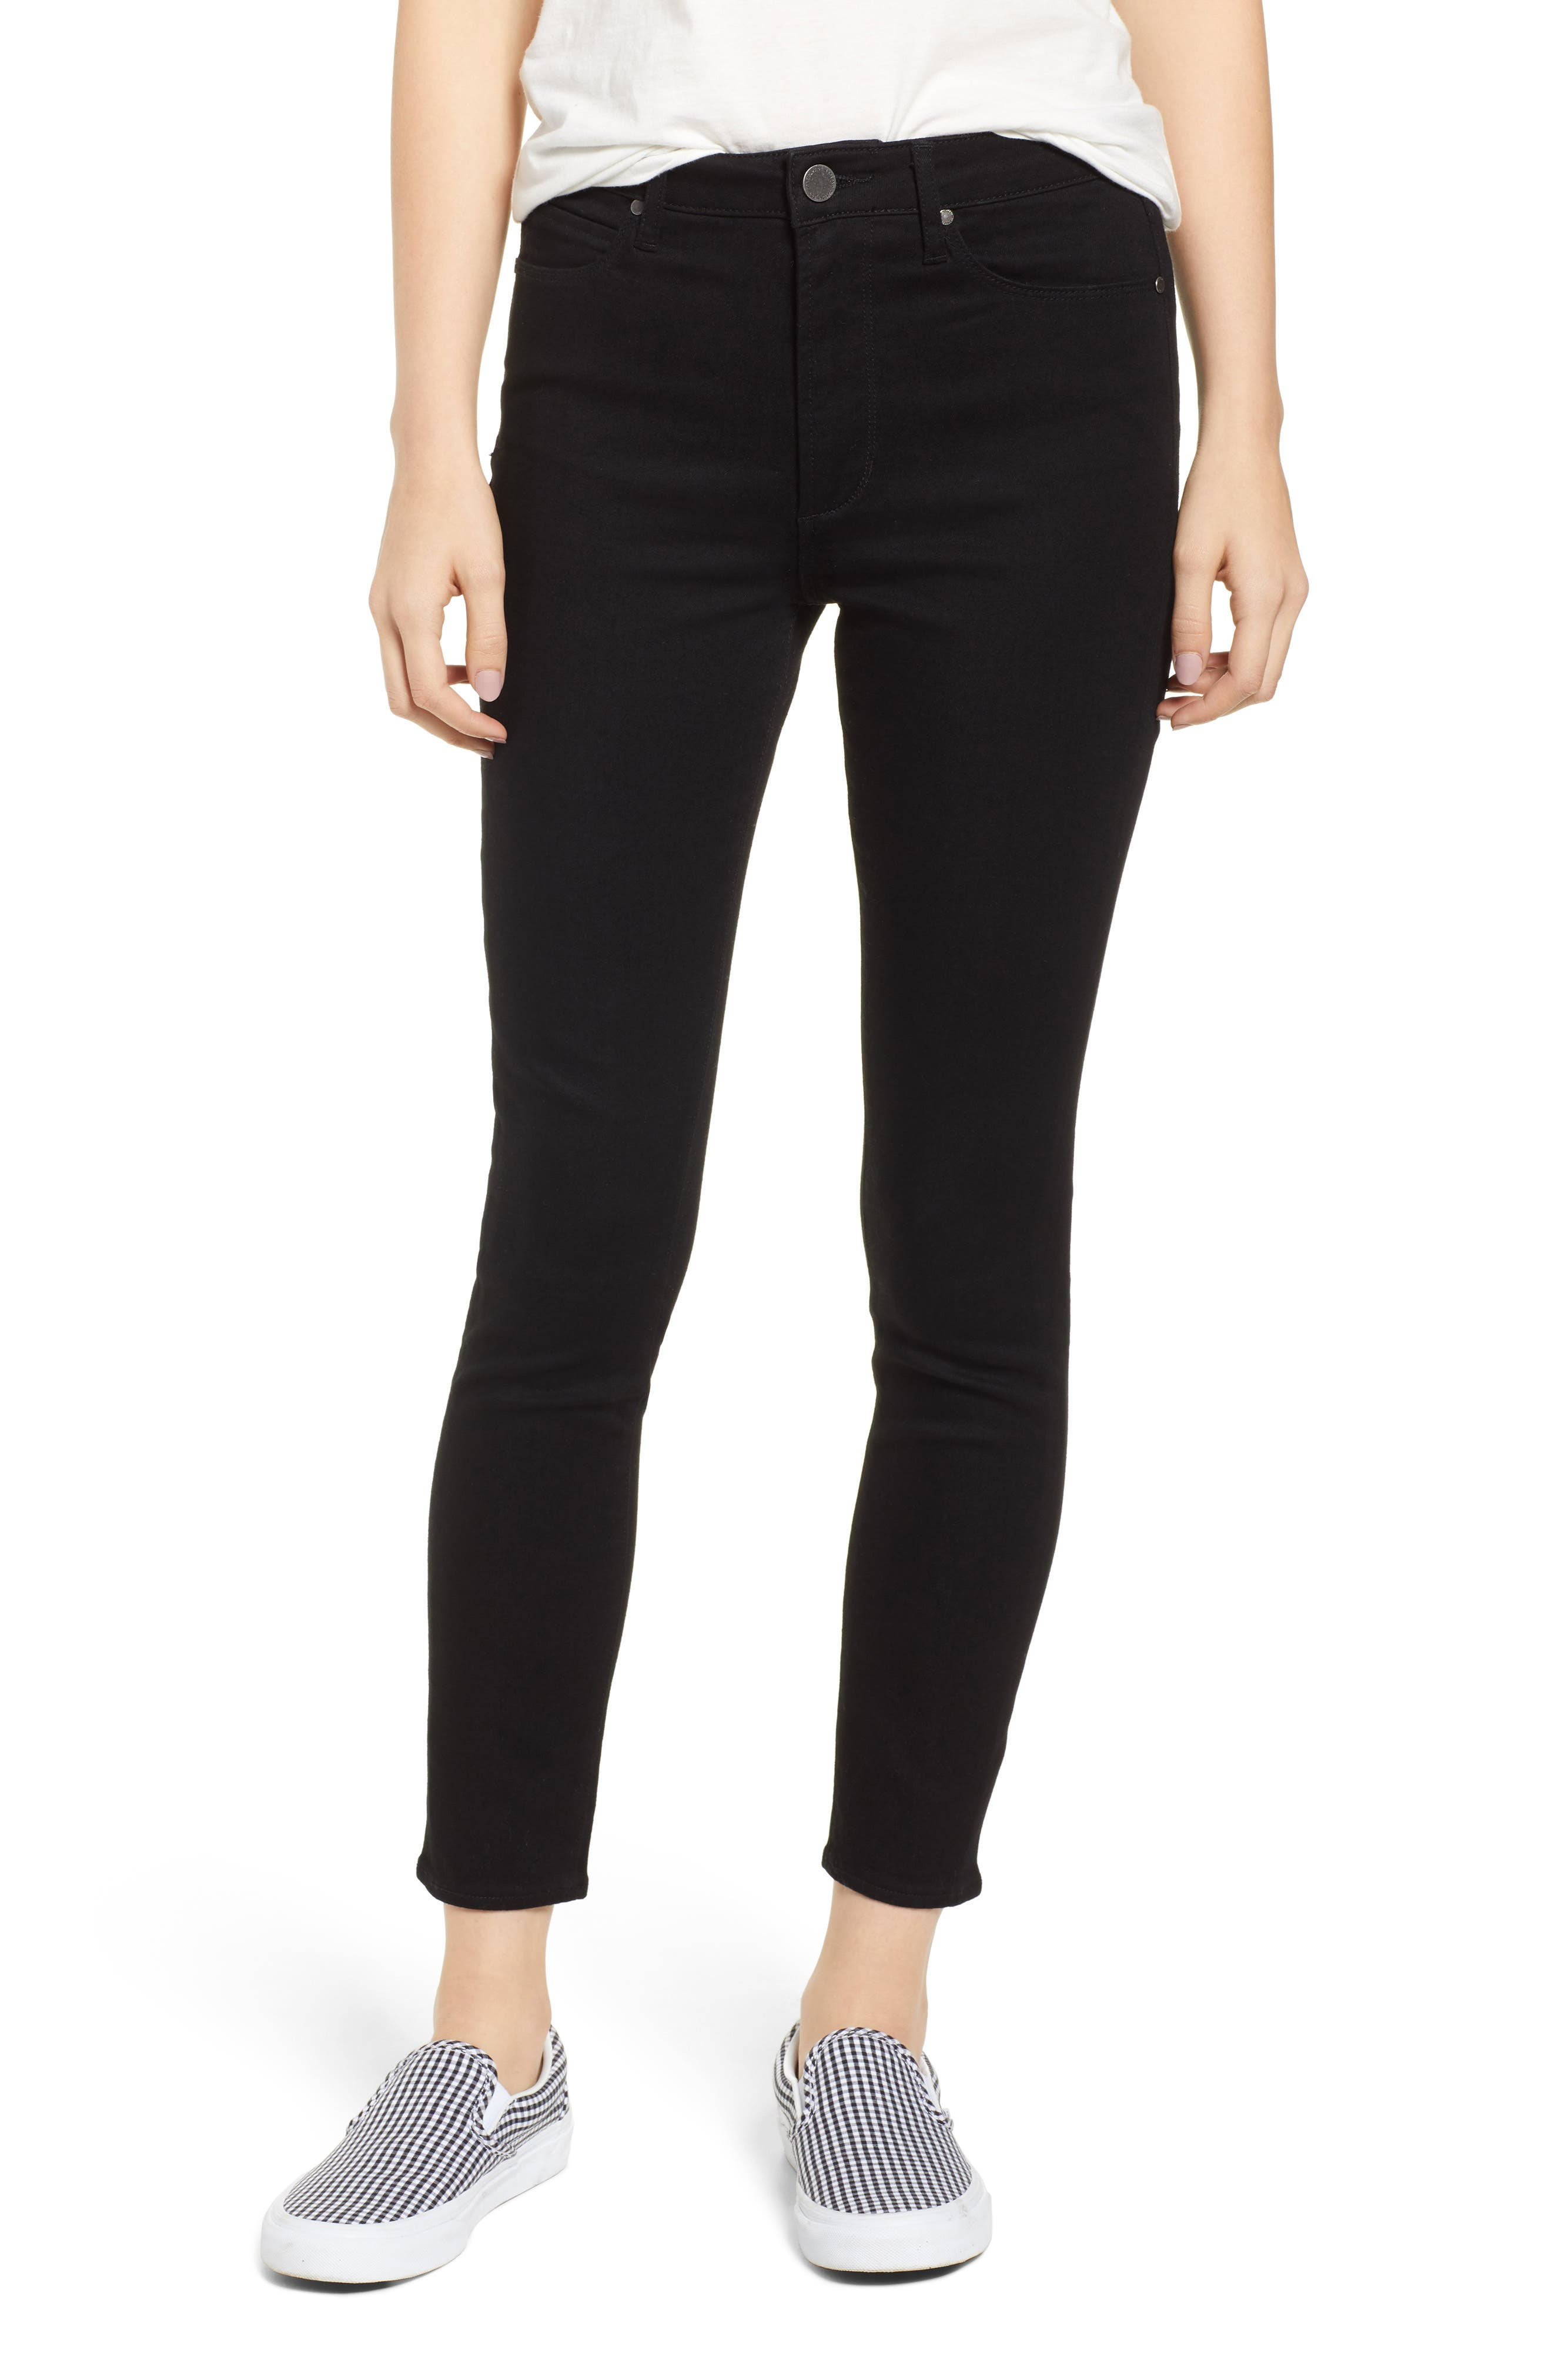 ARTICLES OF SOCIETY Heather High Waist Skinny Jeans in Saba